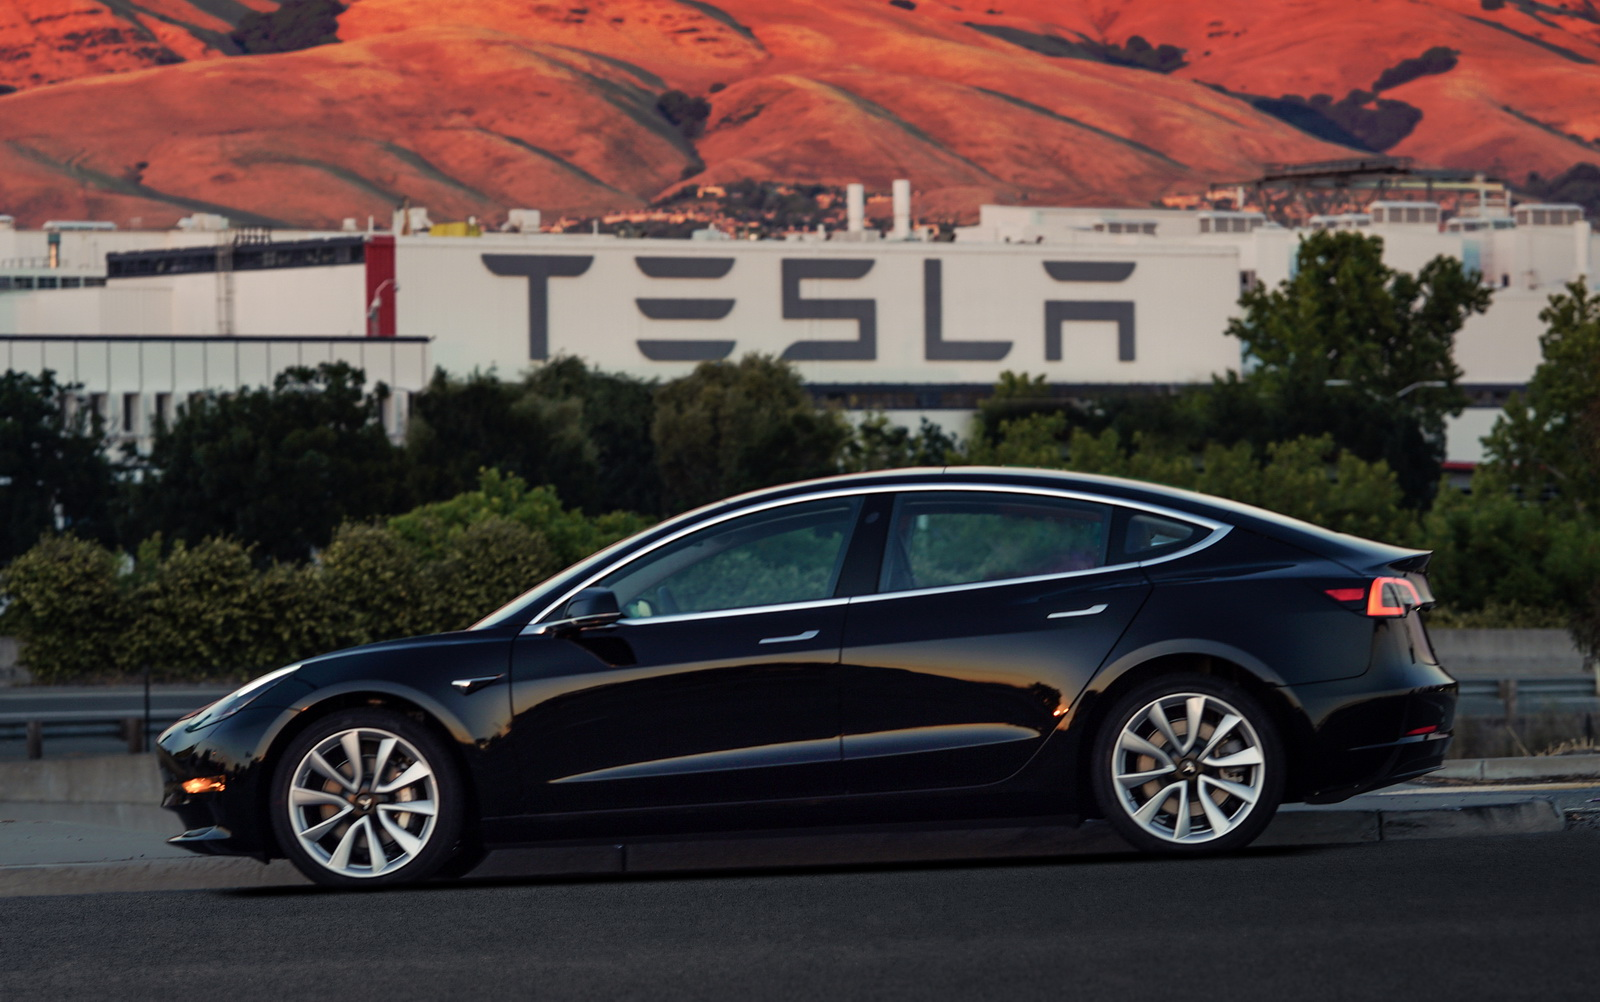 Tesla Announces Robust Third Quarter Production, Delivery